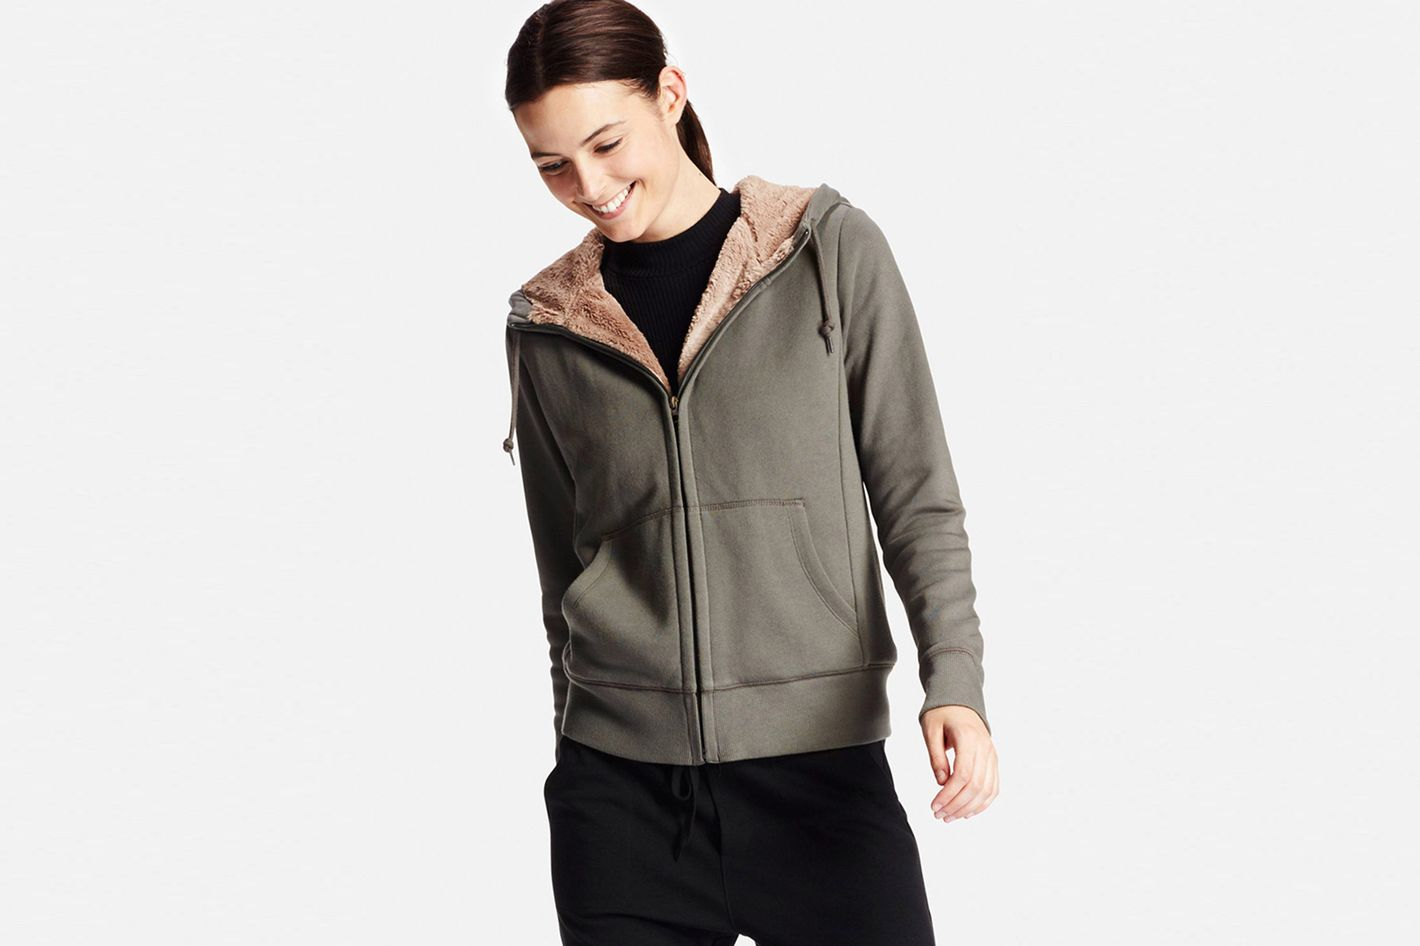 Uniqlo Fleece-Lined Hoodies